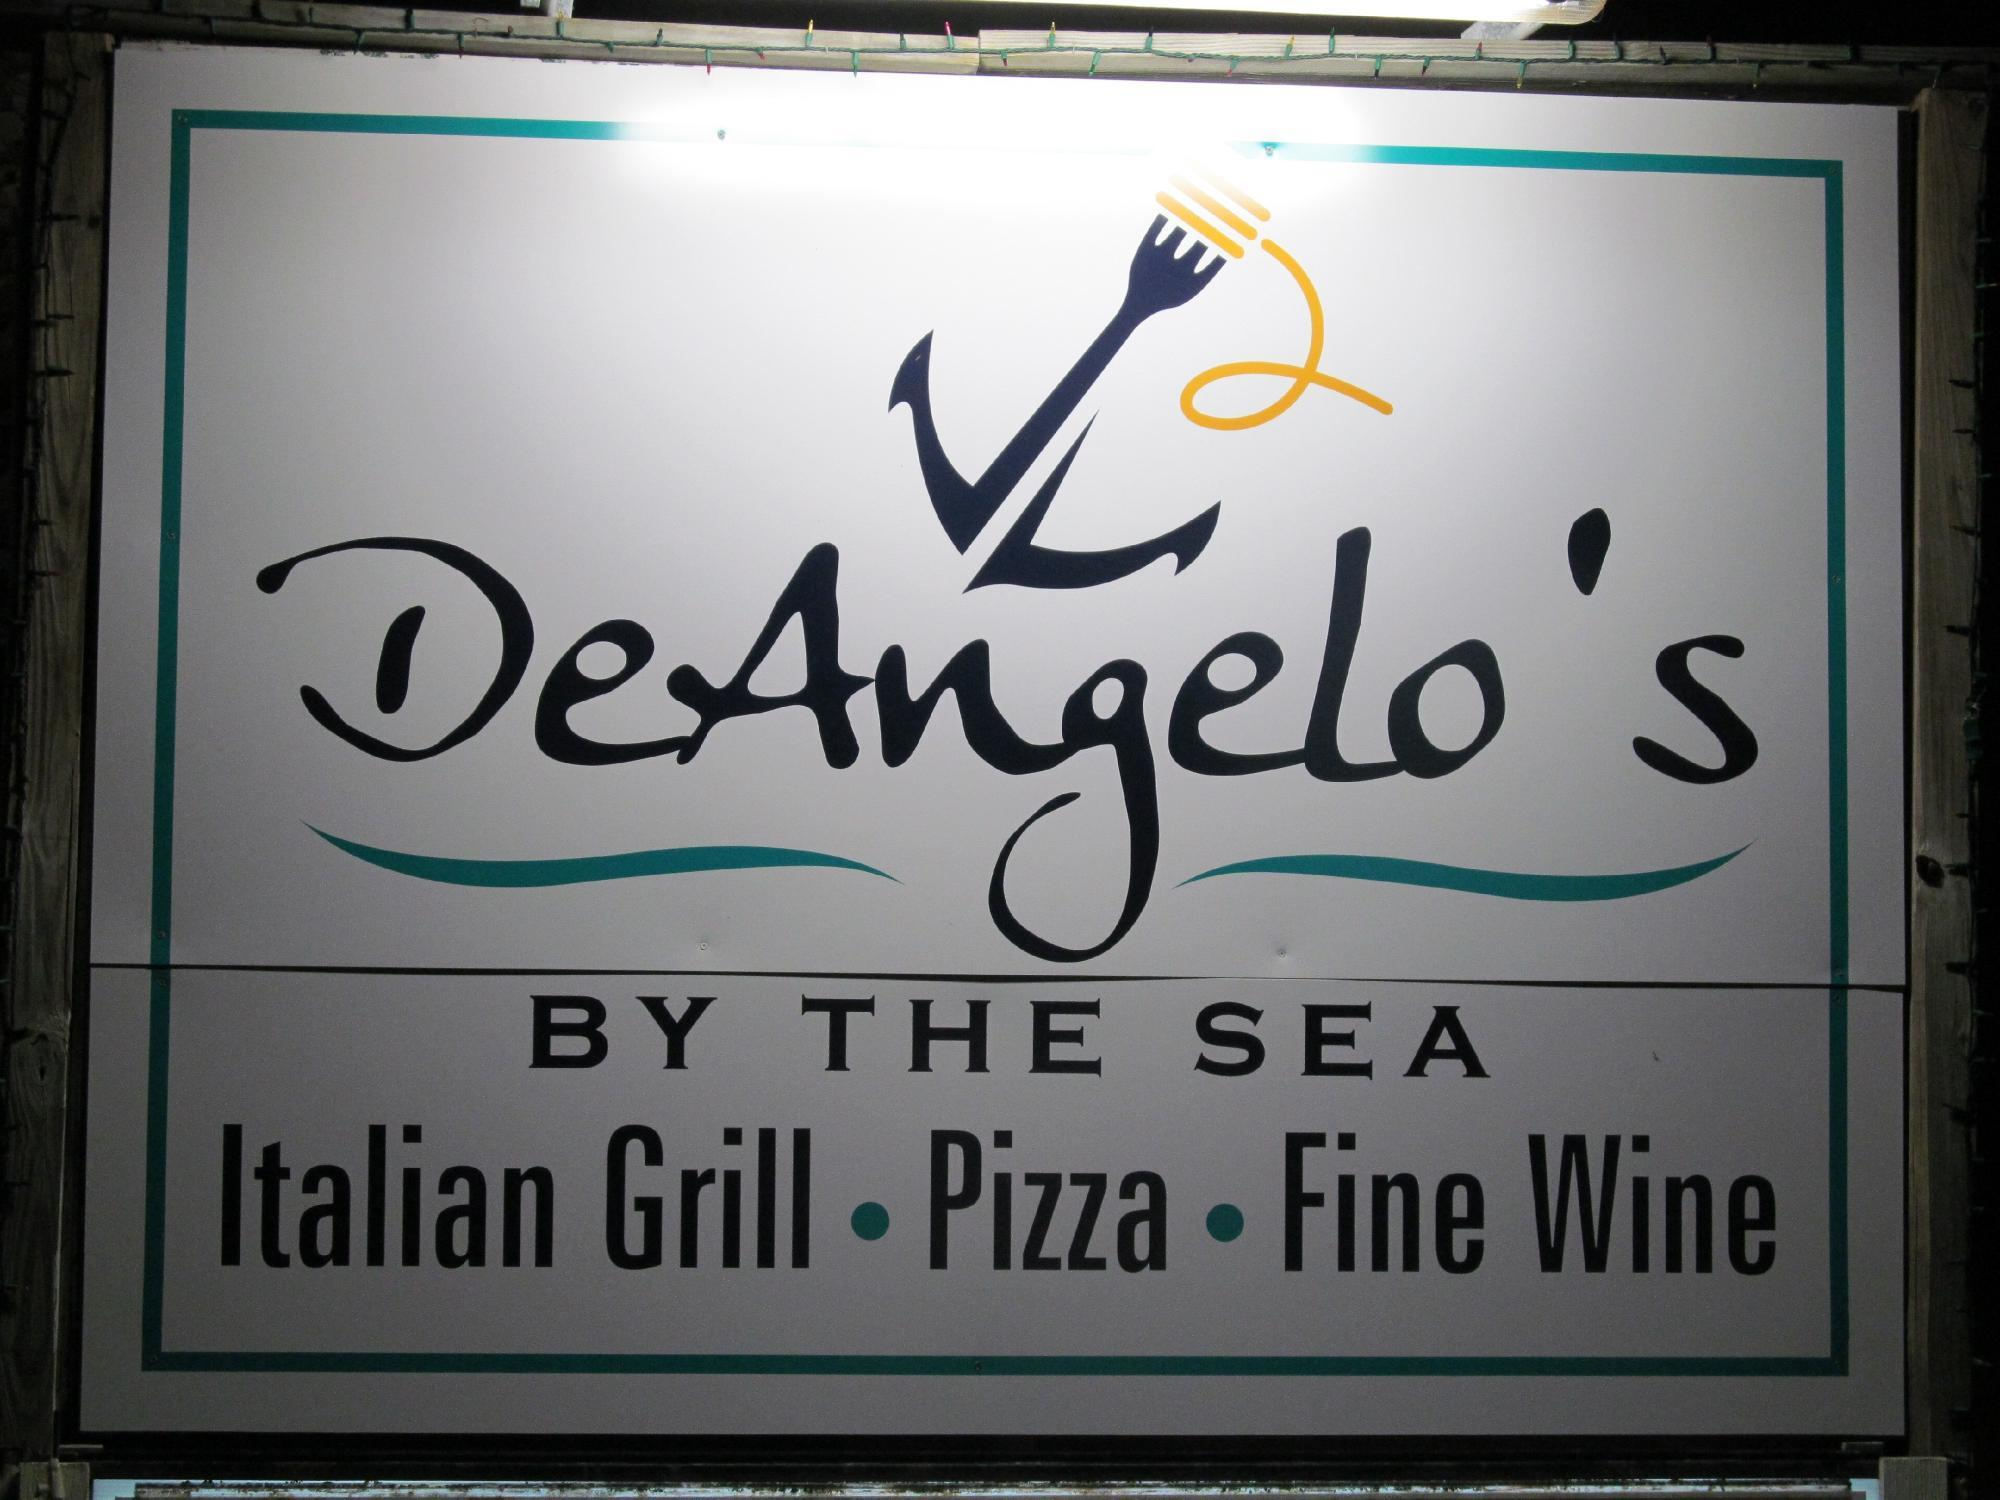 DeAngelos by tde Sea